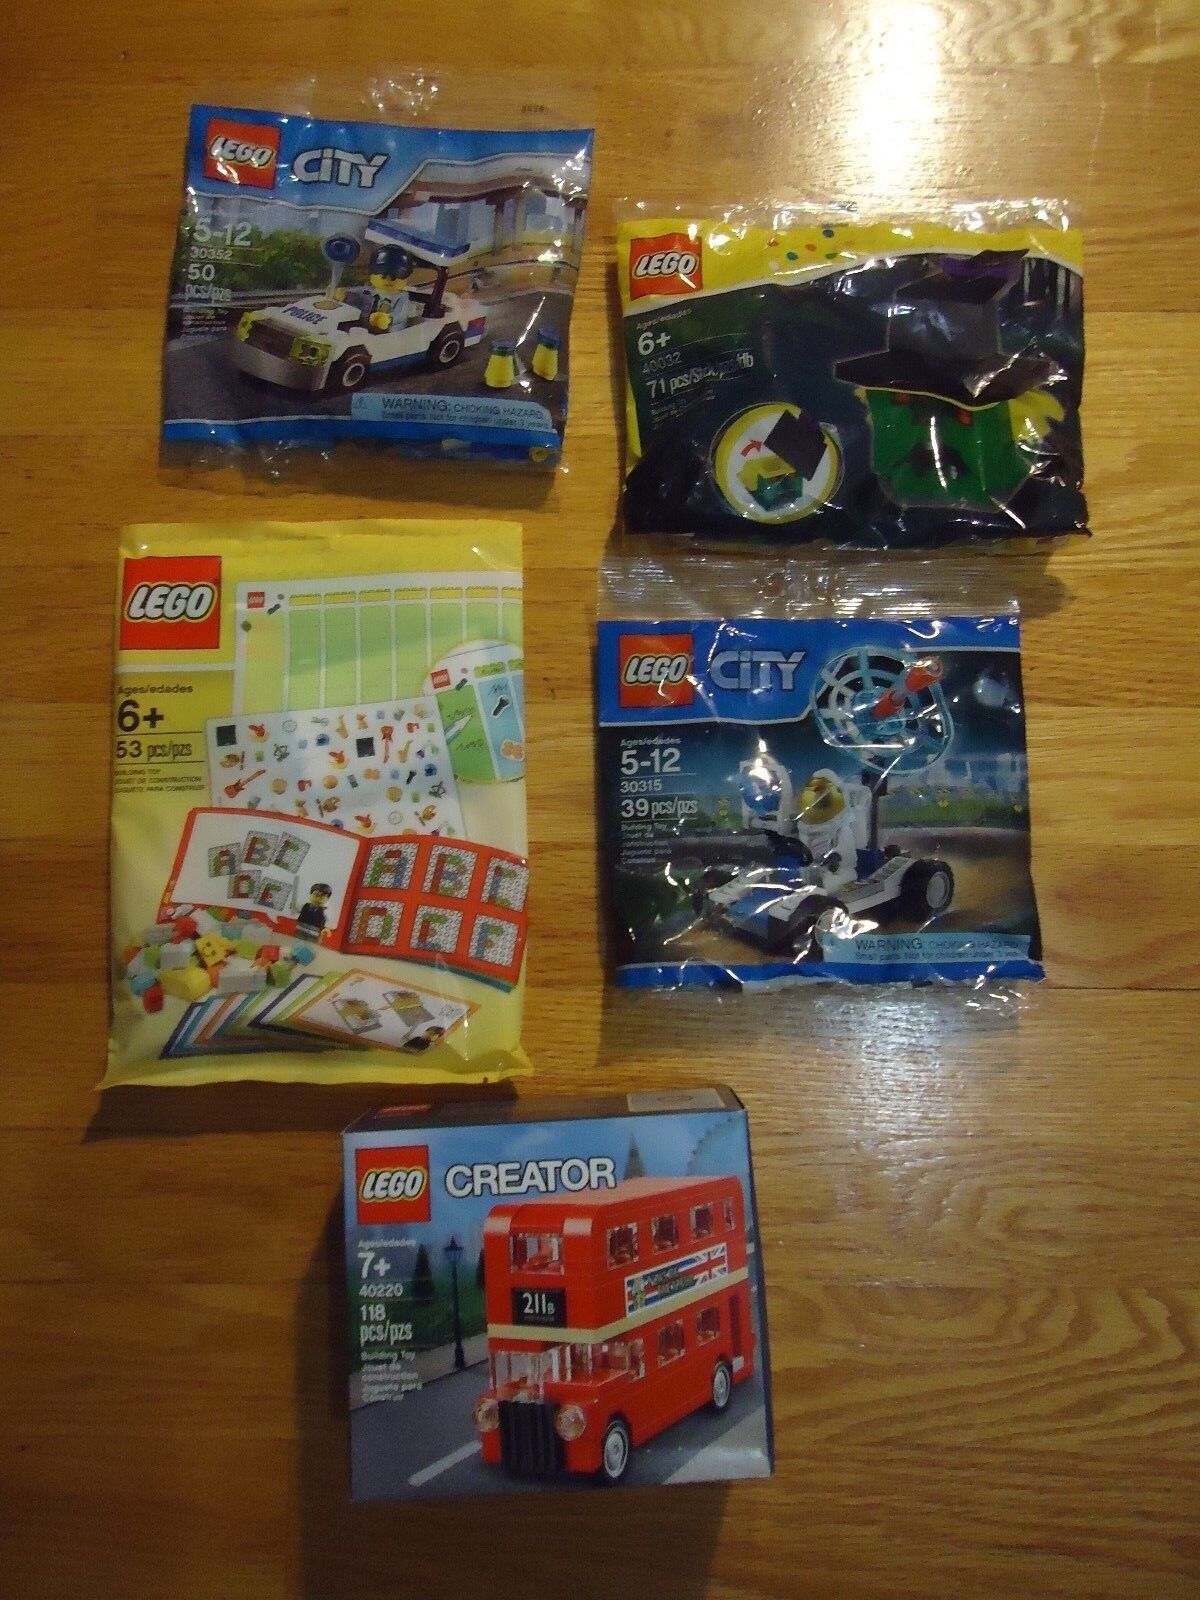 5 New Lego Sets 40291 Creative Story Book, 40220 London Bus, 30315, 40032, 30352